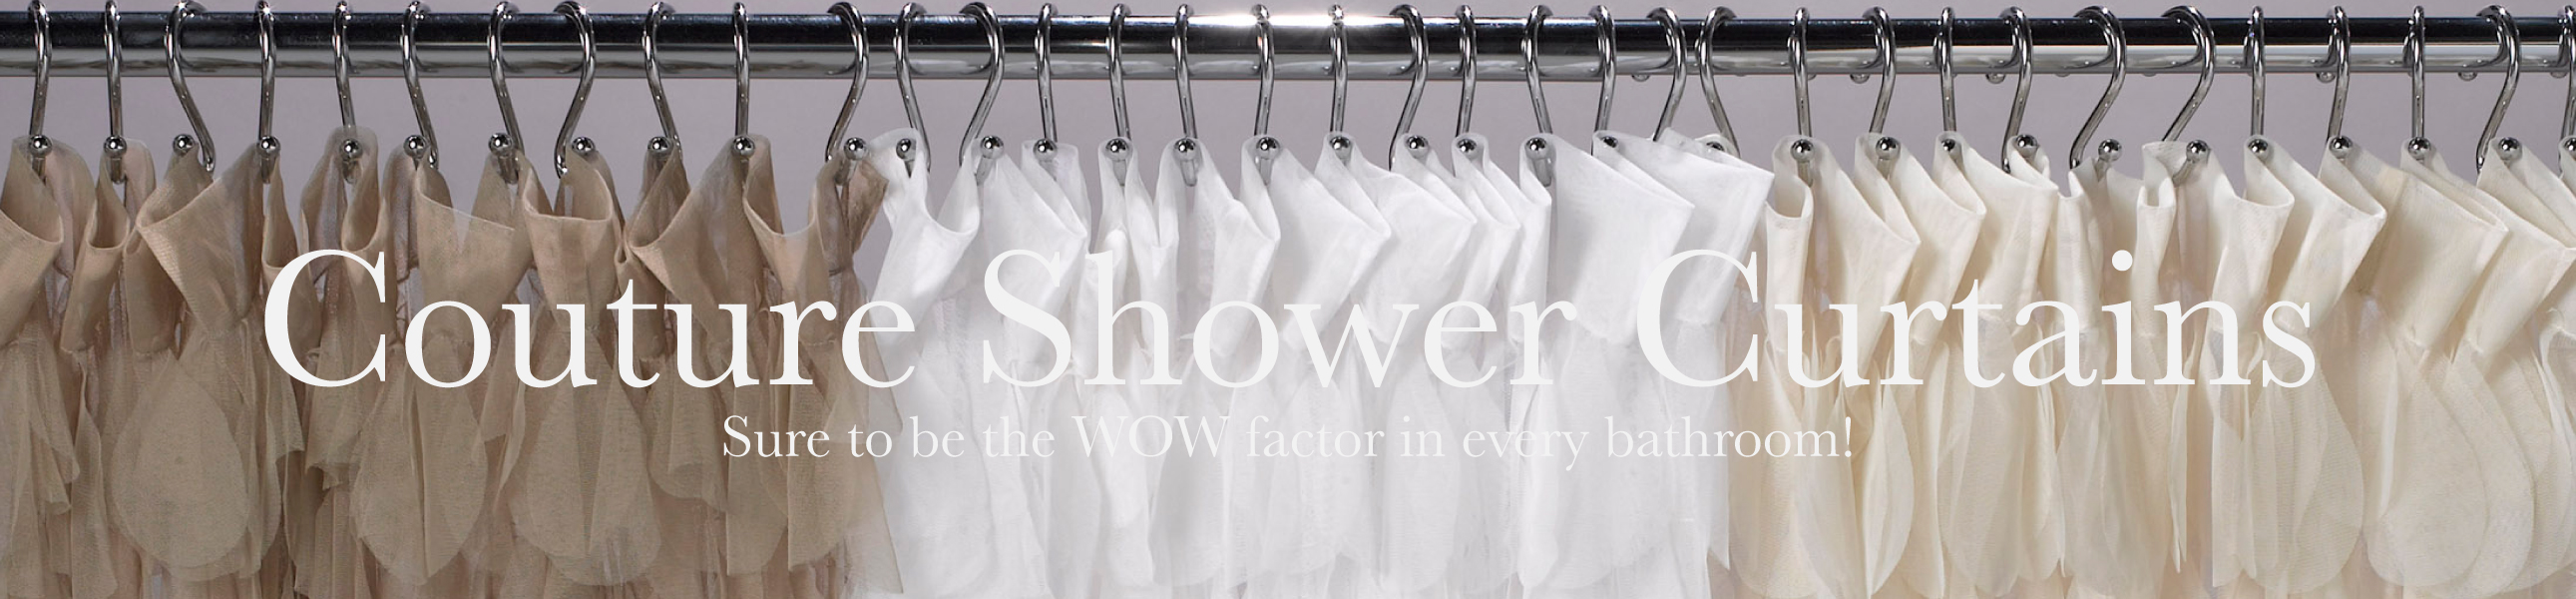 cd-shower-curtain-banner.jpg